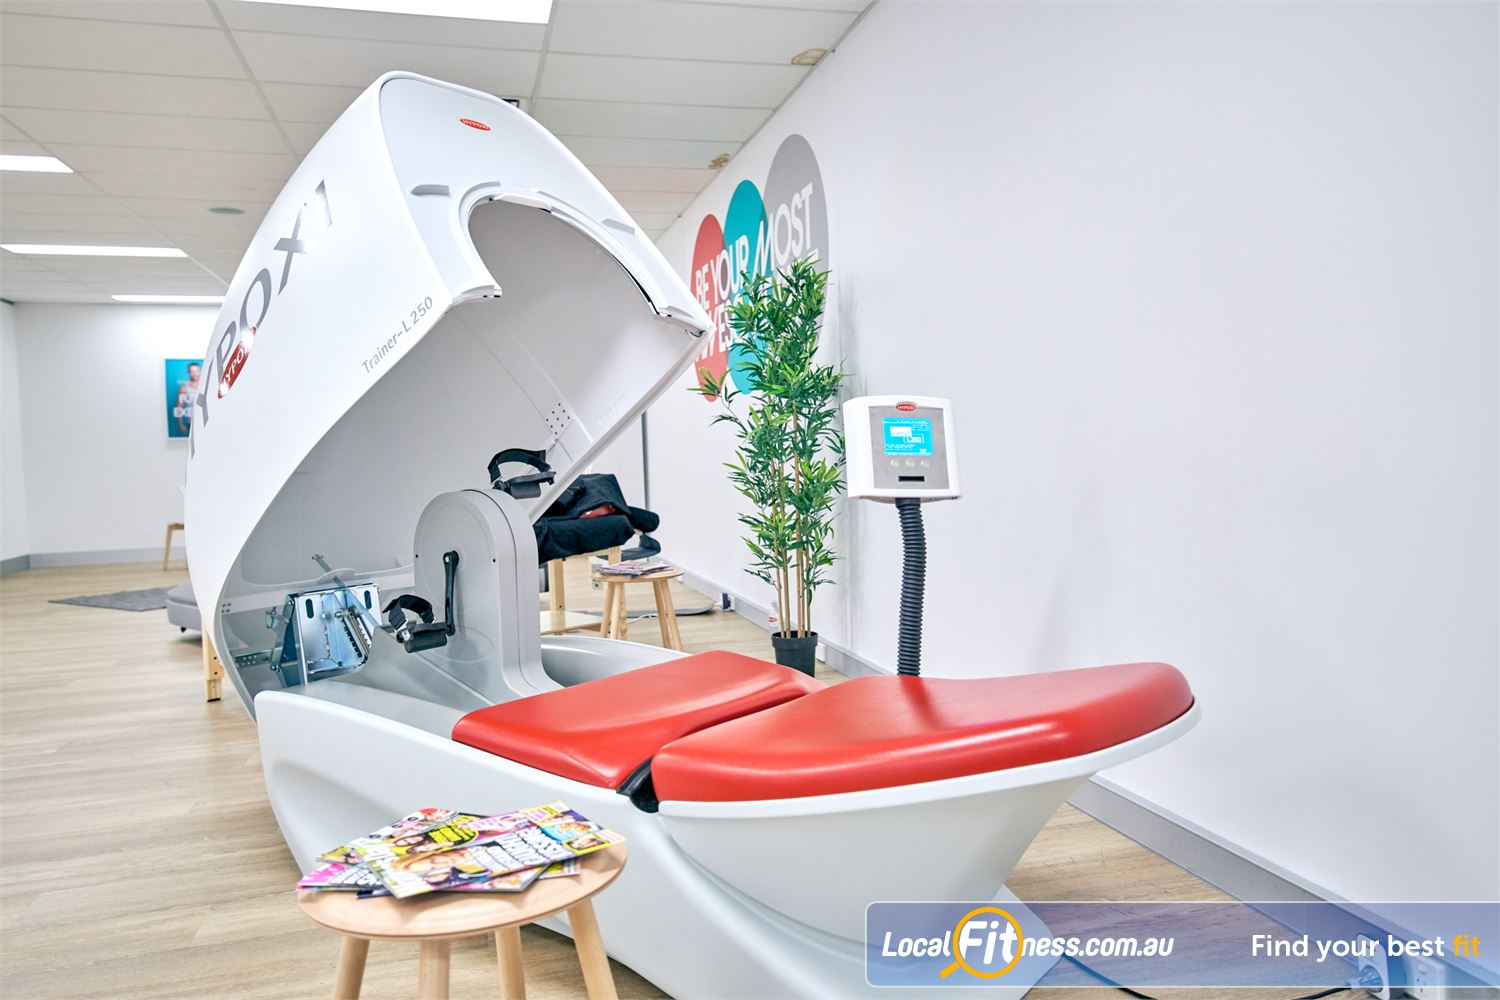 HYPOXI Weight Loss Near Erskineville Average client loses 26cm in first 4 weeks at HYPOXI Newtown.